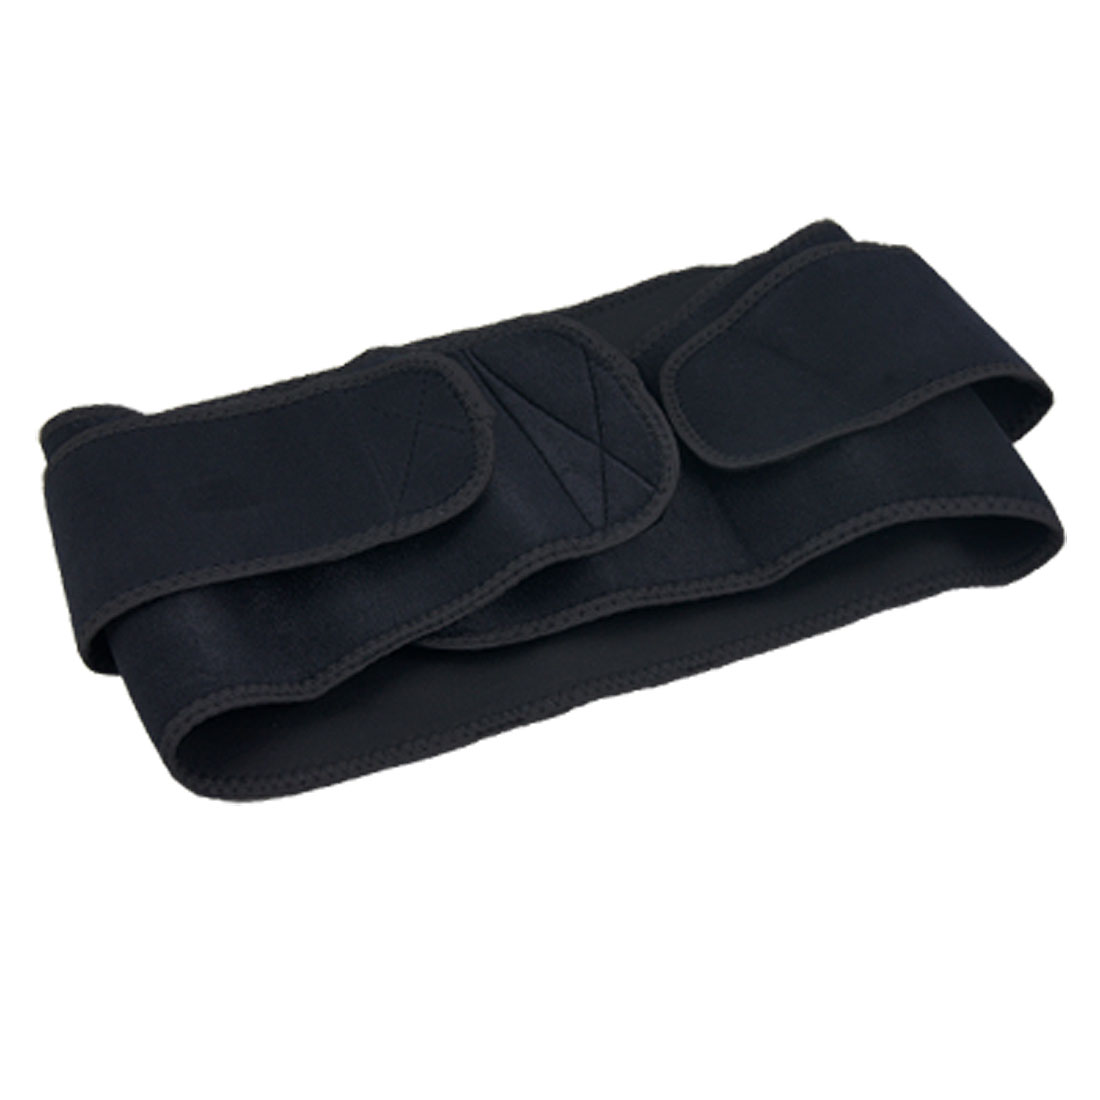 Black Adjustable Waist Support Wrap w Compression Strap